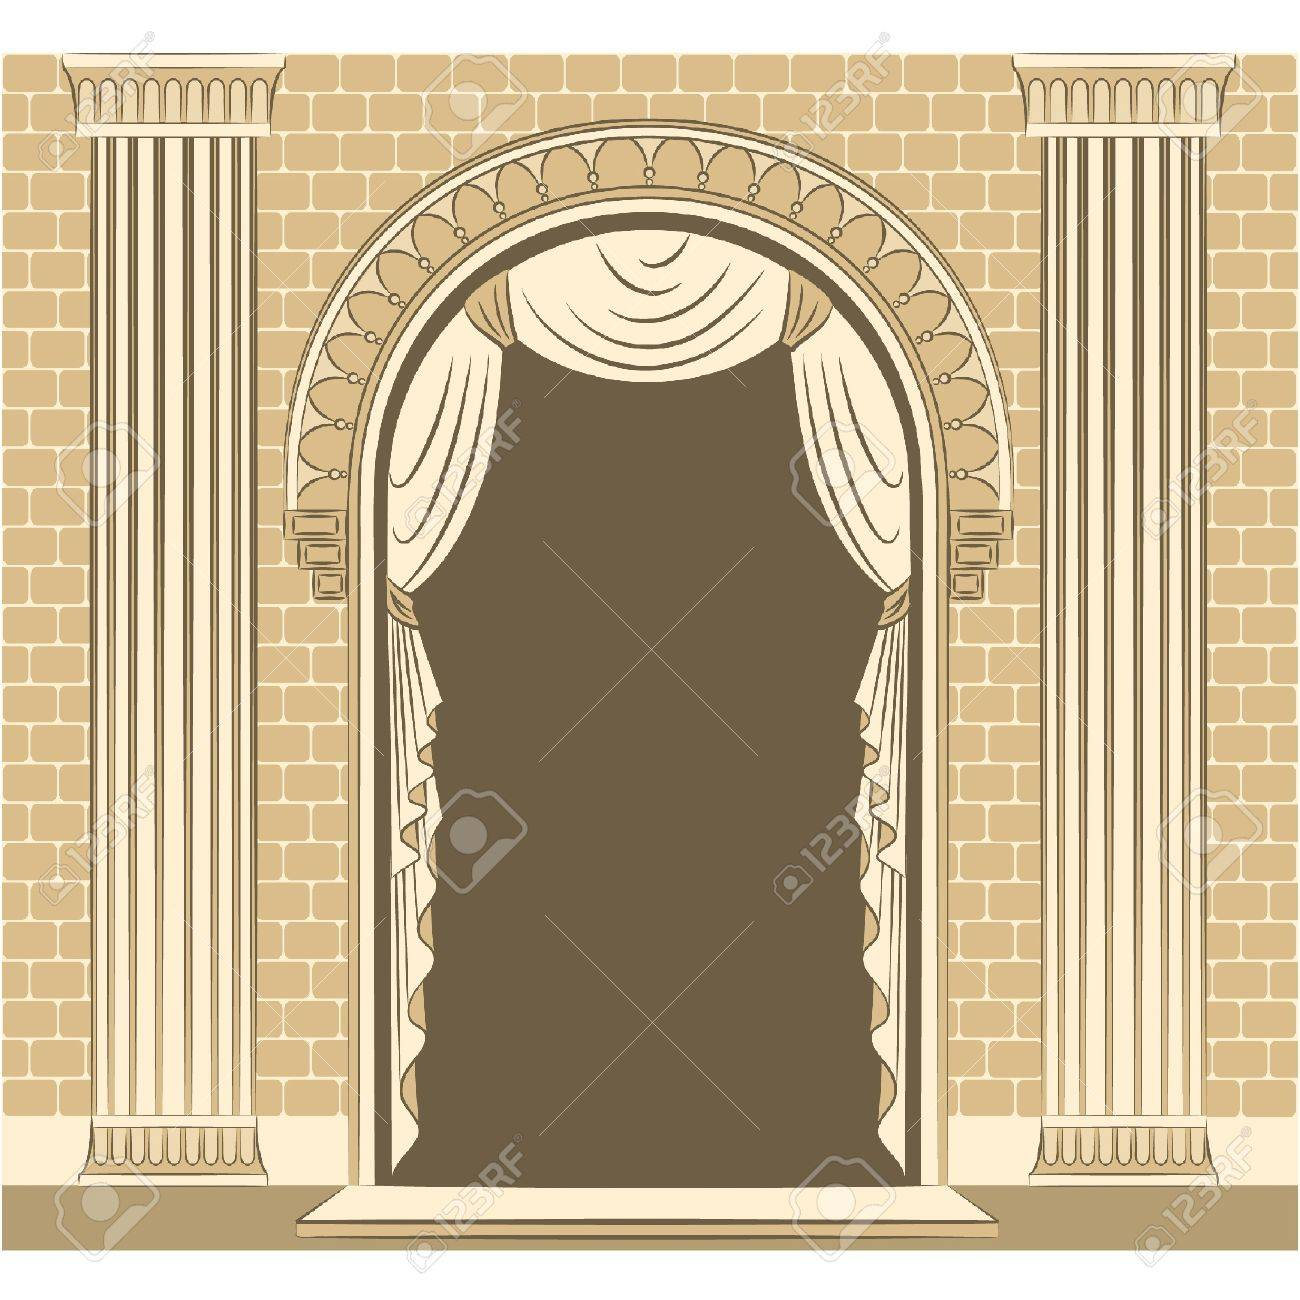 The vintage interior with curtain. Stock Vector - 11106888